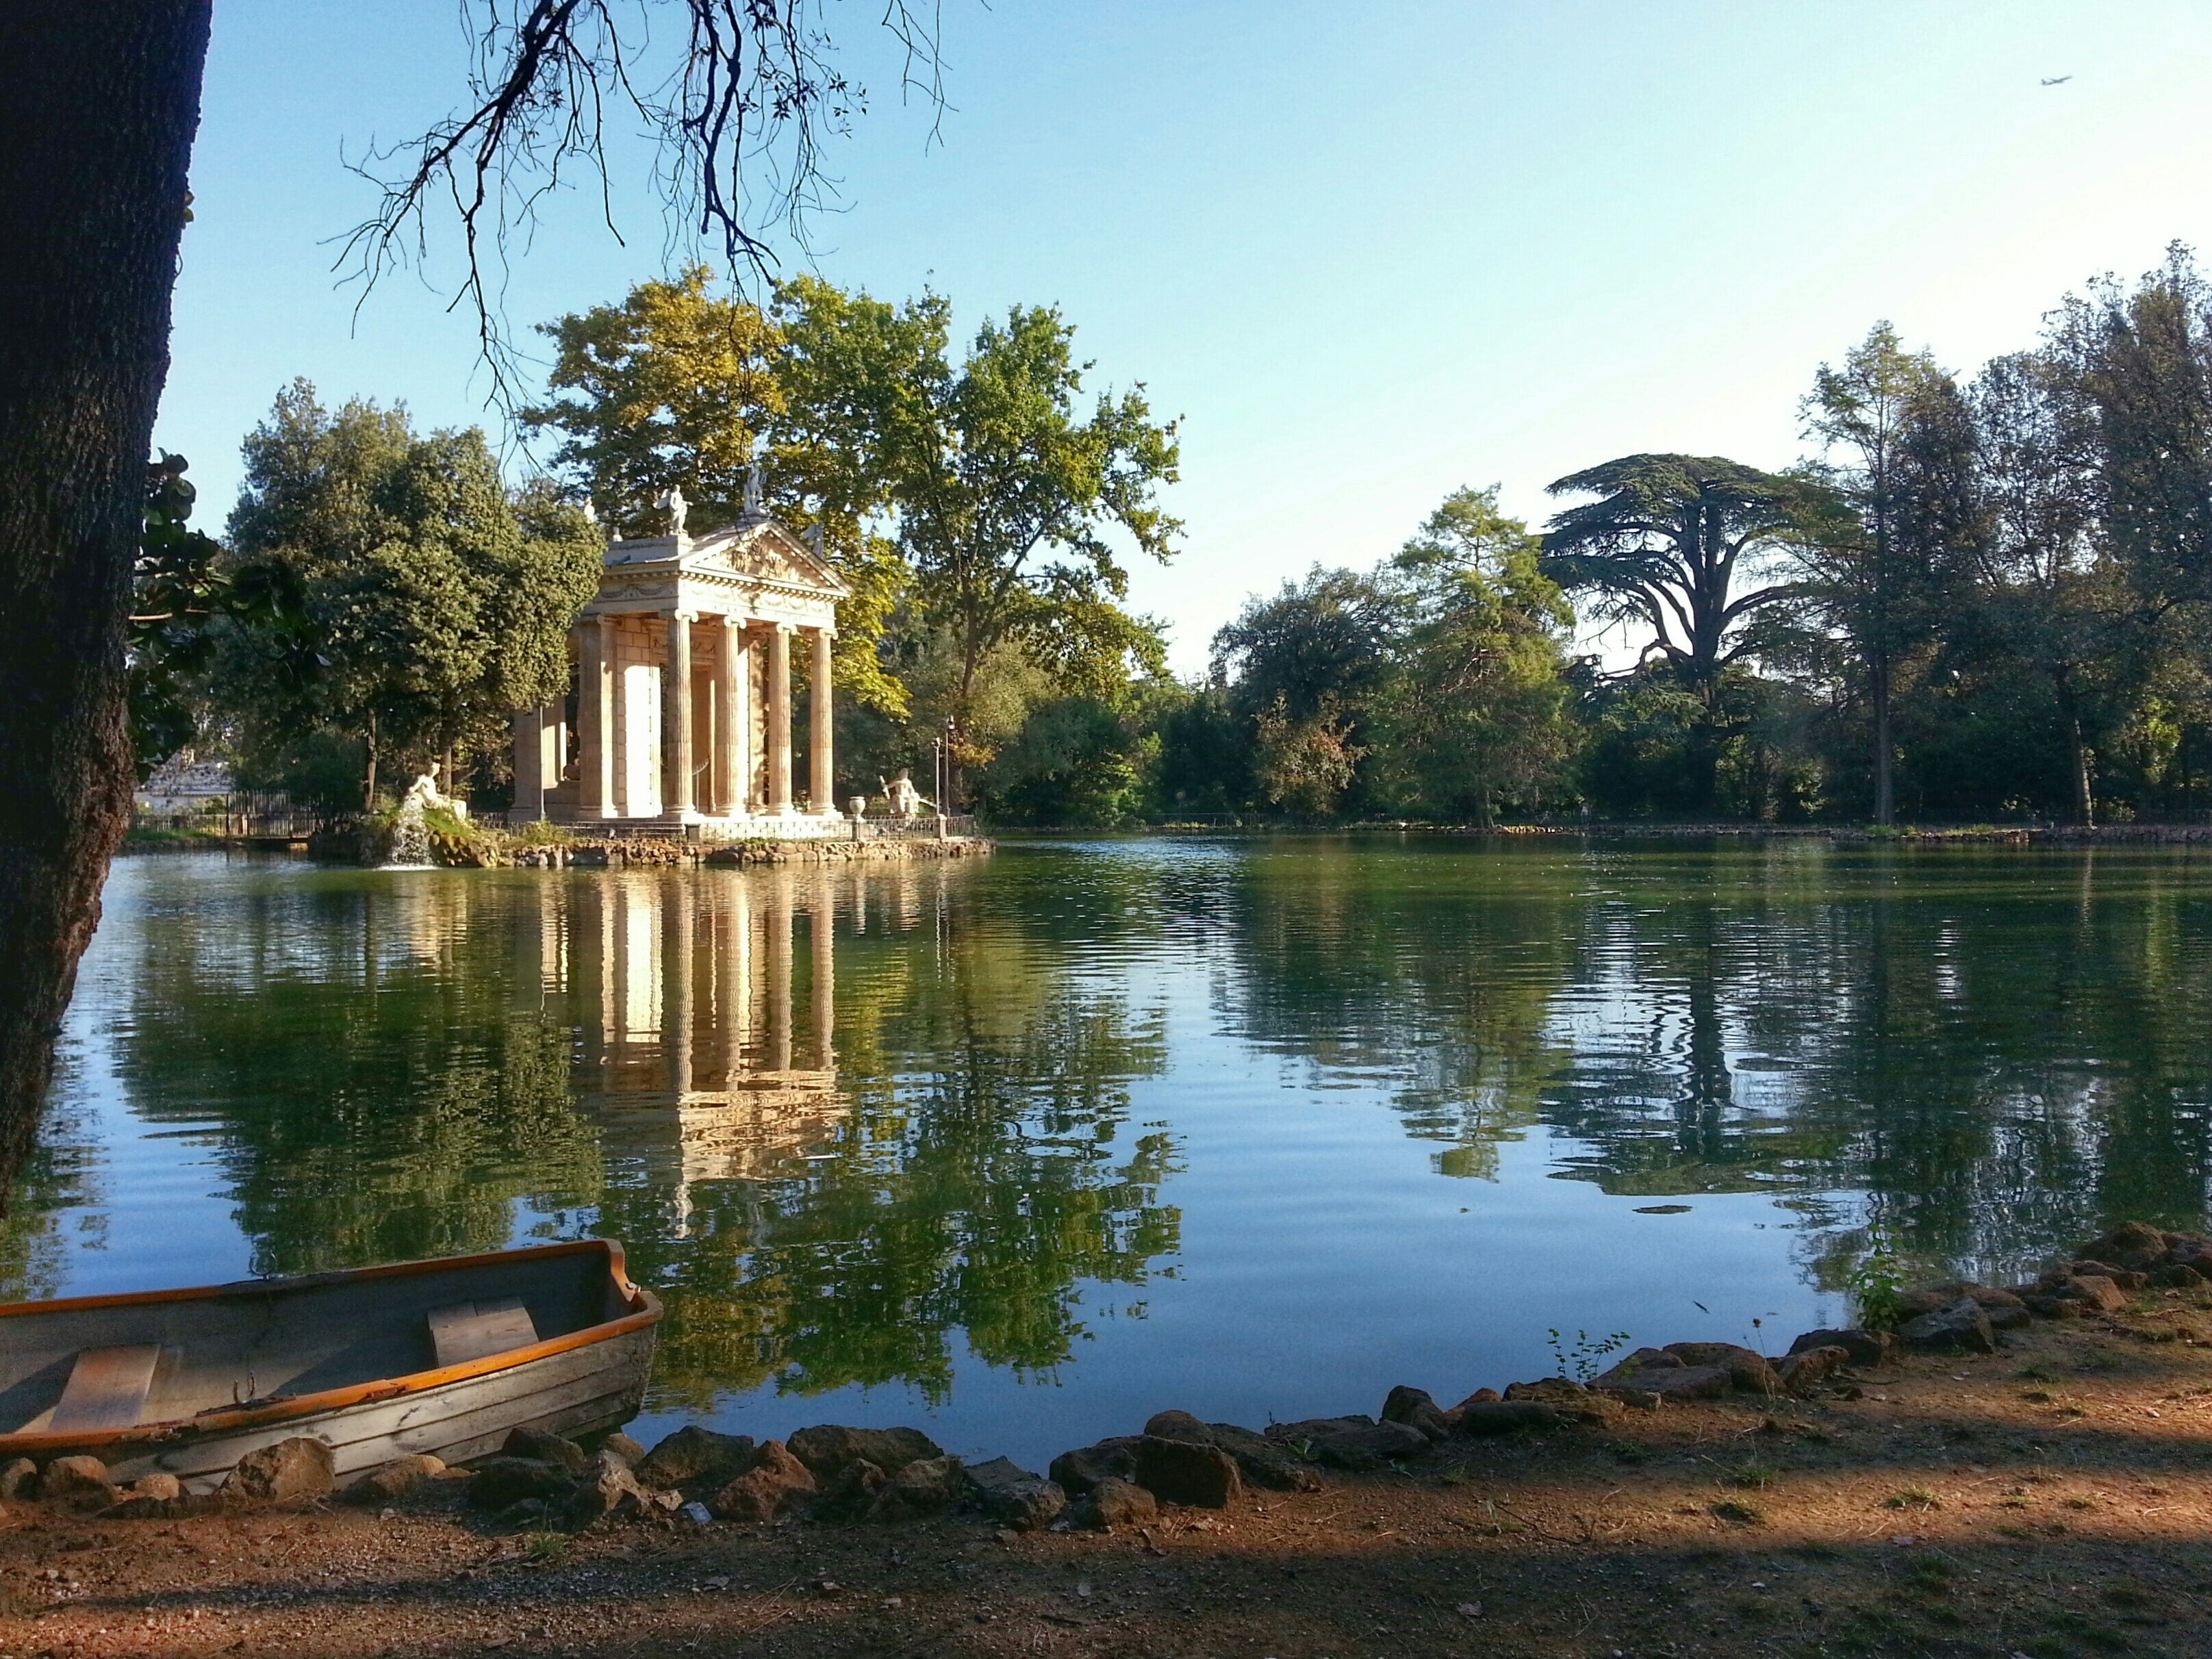 Abandoned Boat In Pond With Reflection At Villa Borghese Gardens